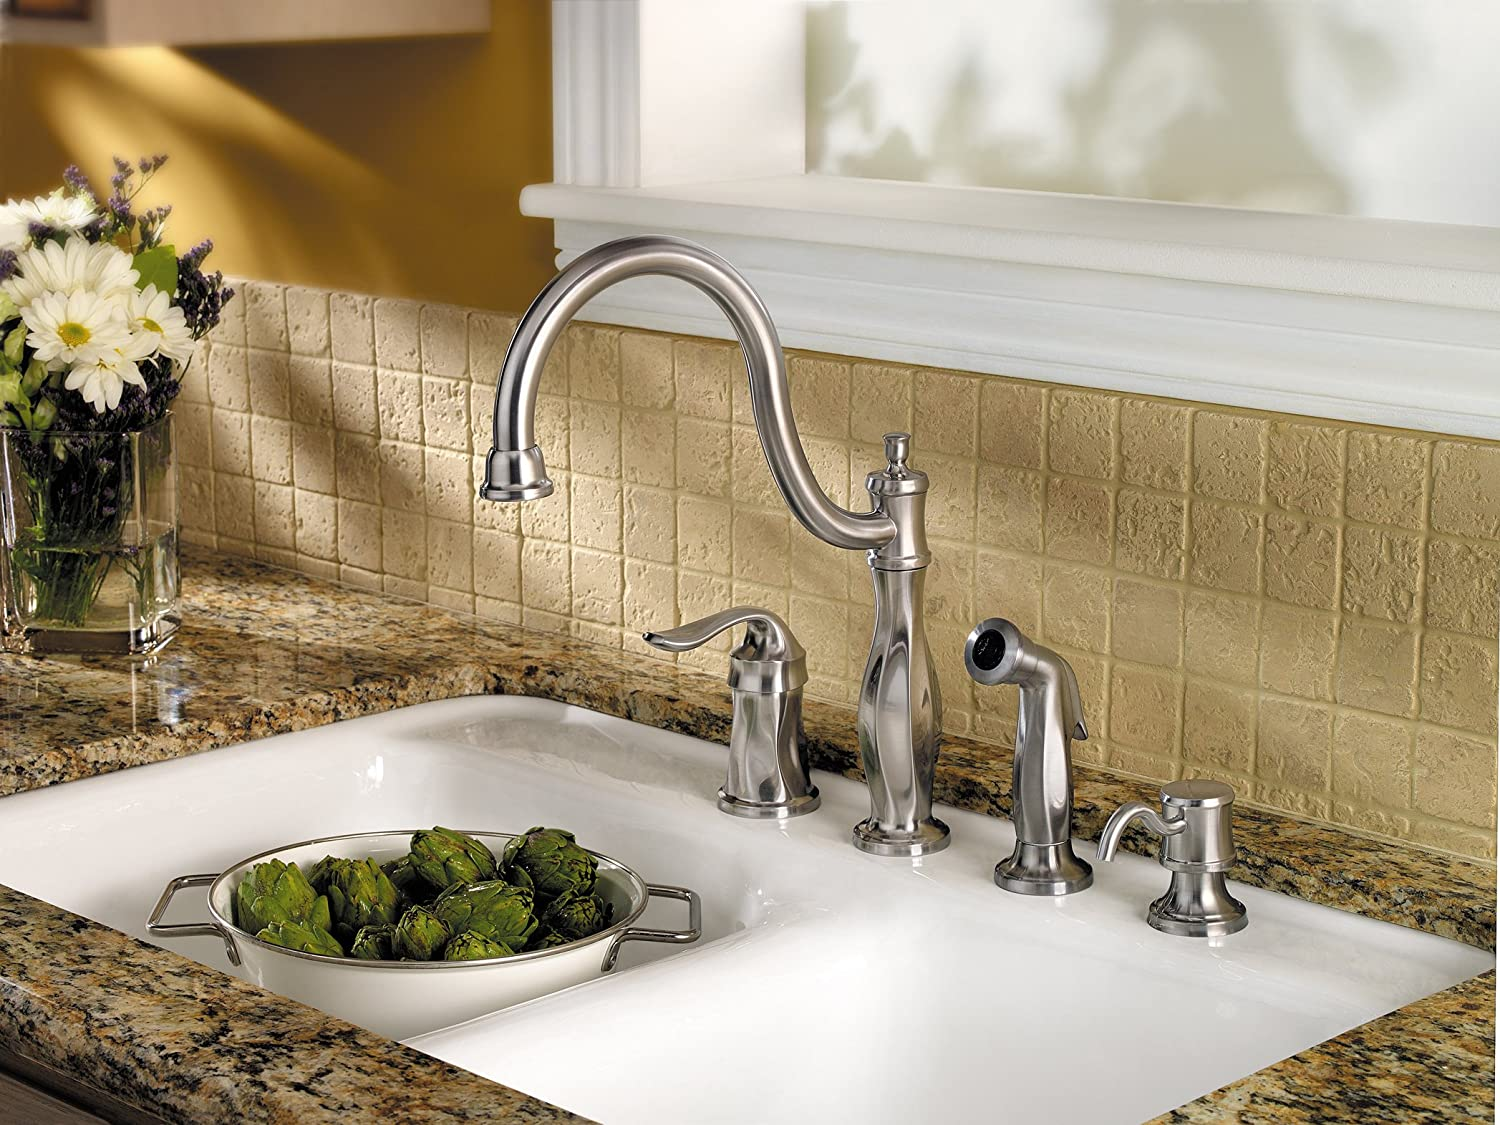 Pfister LF0264TWS Cadenza 1-Handle Kitchen Faucet with Side Spray and Soap Dispenser in Stainless Steel, Water-Efficient Model